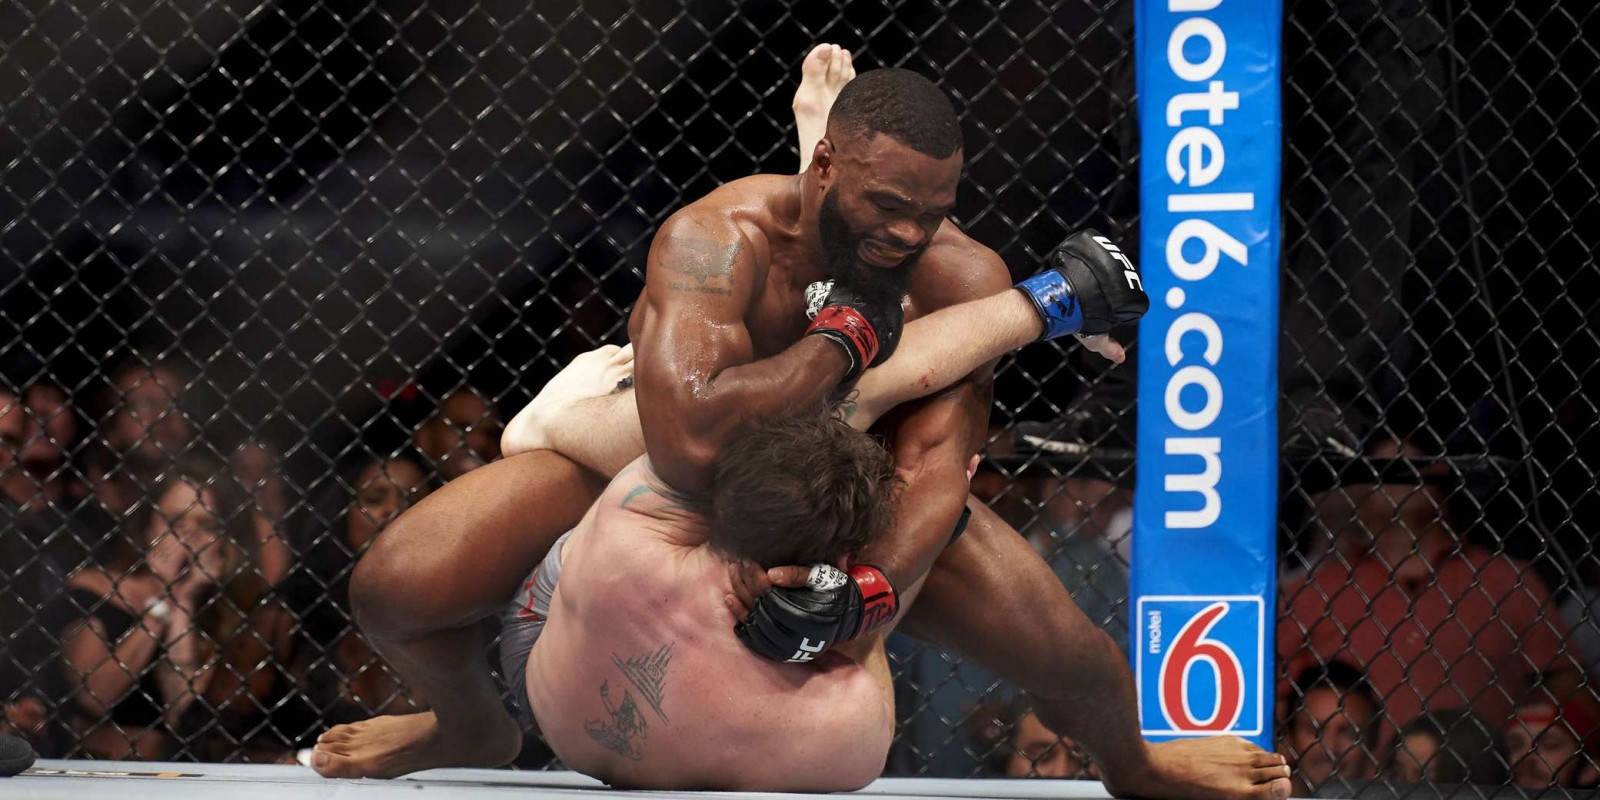 Tyron Woodley celebrates after defeating Darren Till during the UFC 228 event at American Airlines Center on September 8, 2018 in Dallas, Texas